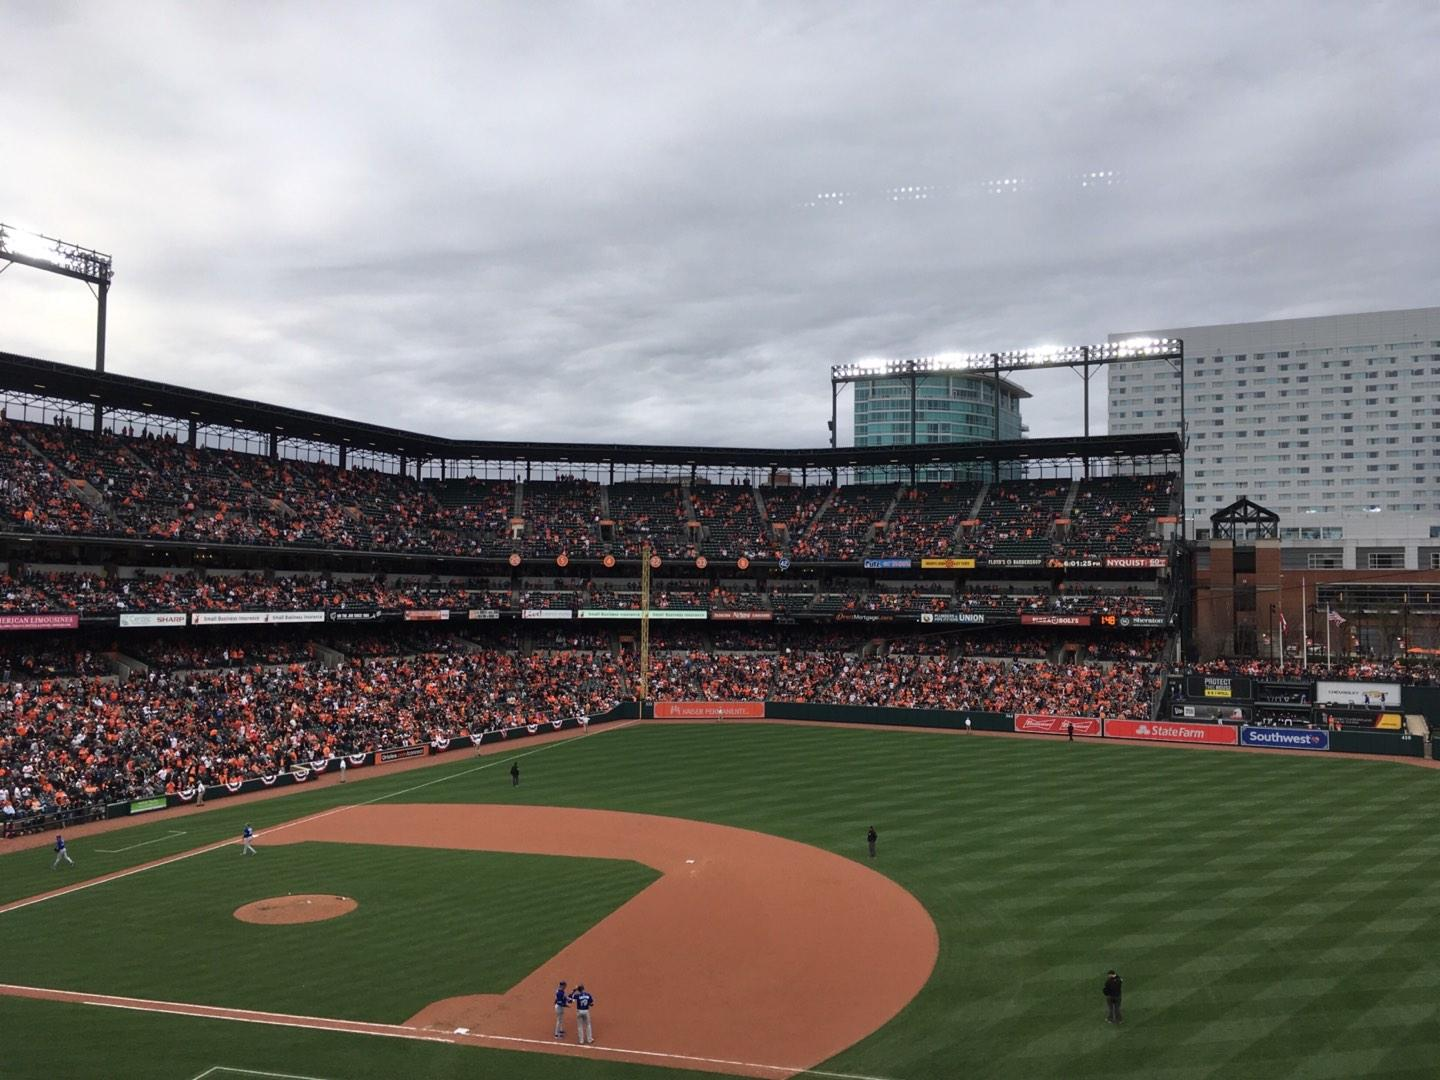 Oriole Park at Camden Yards Section 216 Row 4 Seat 17